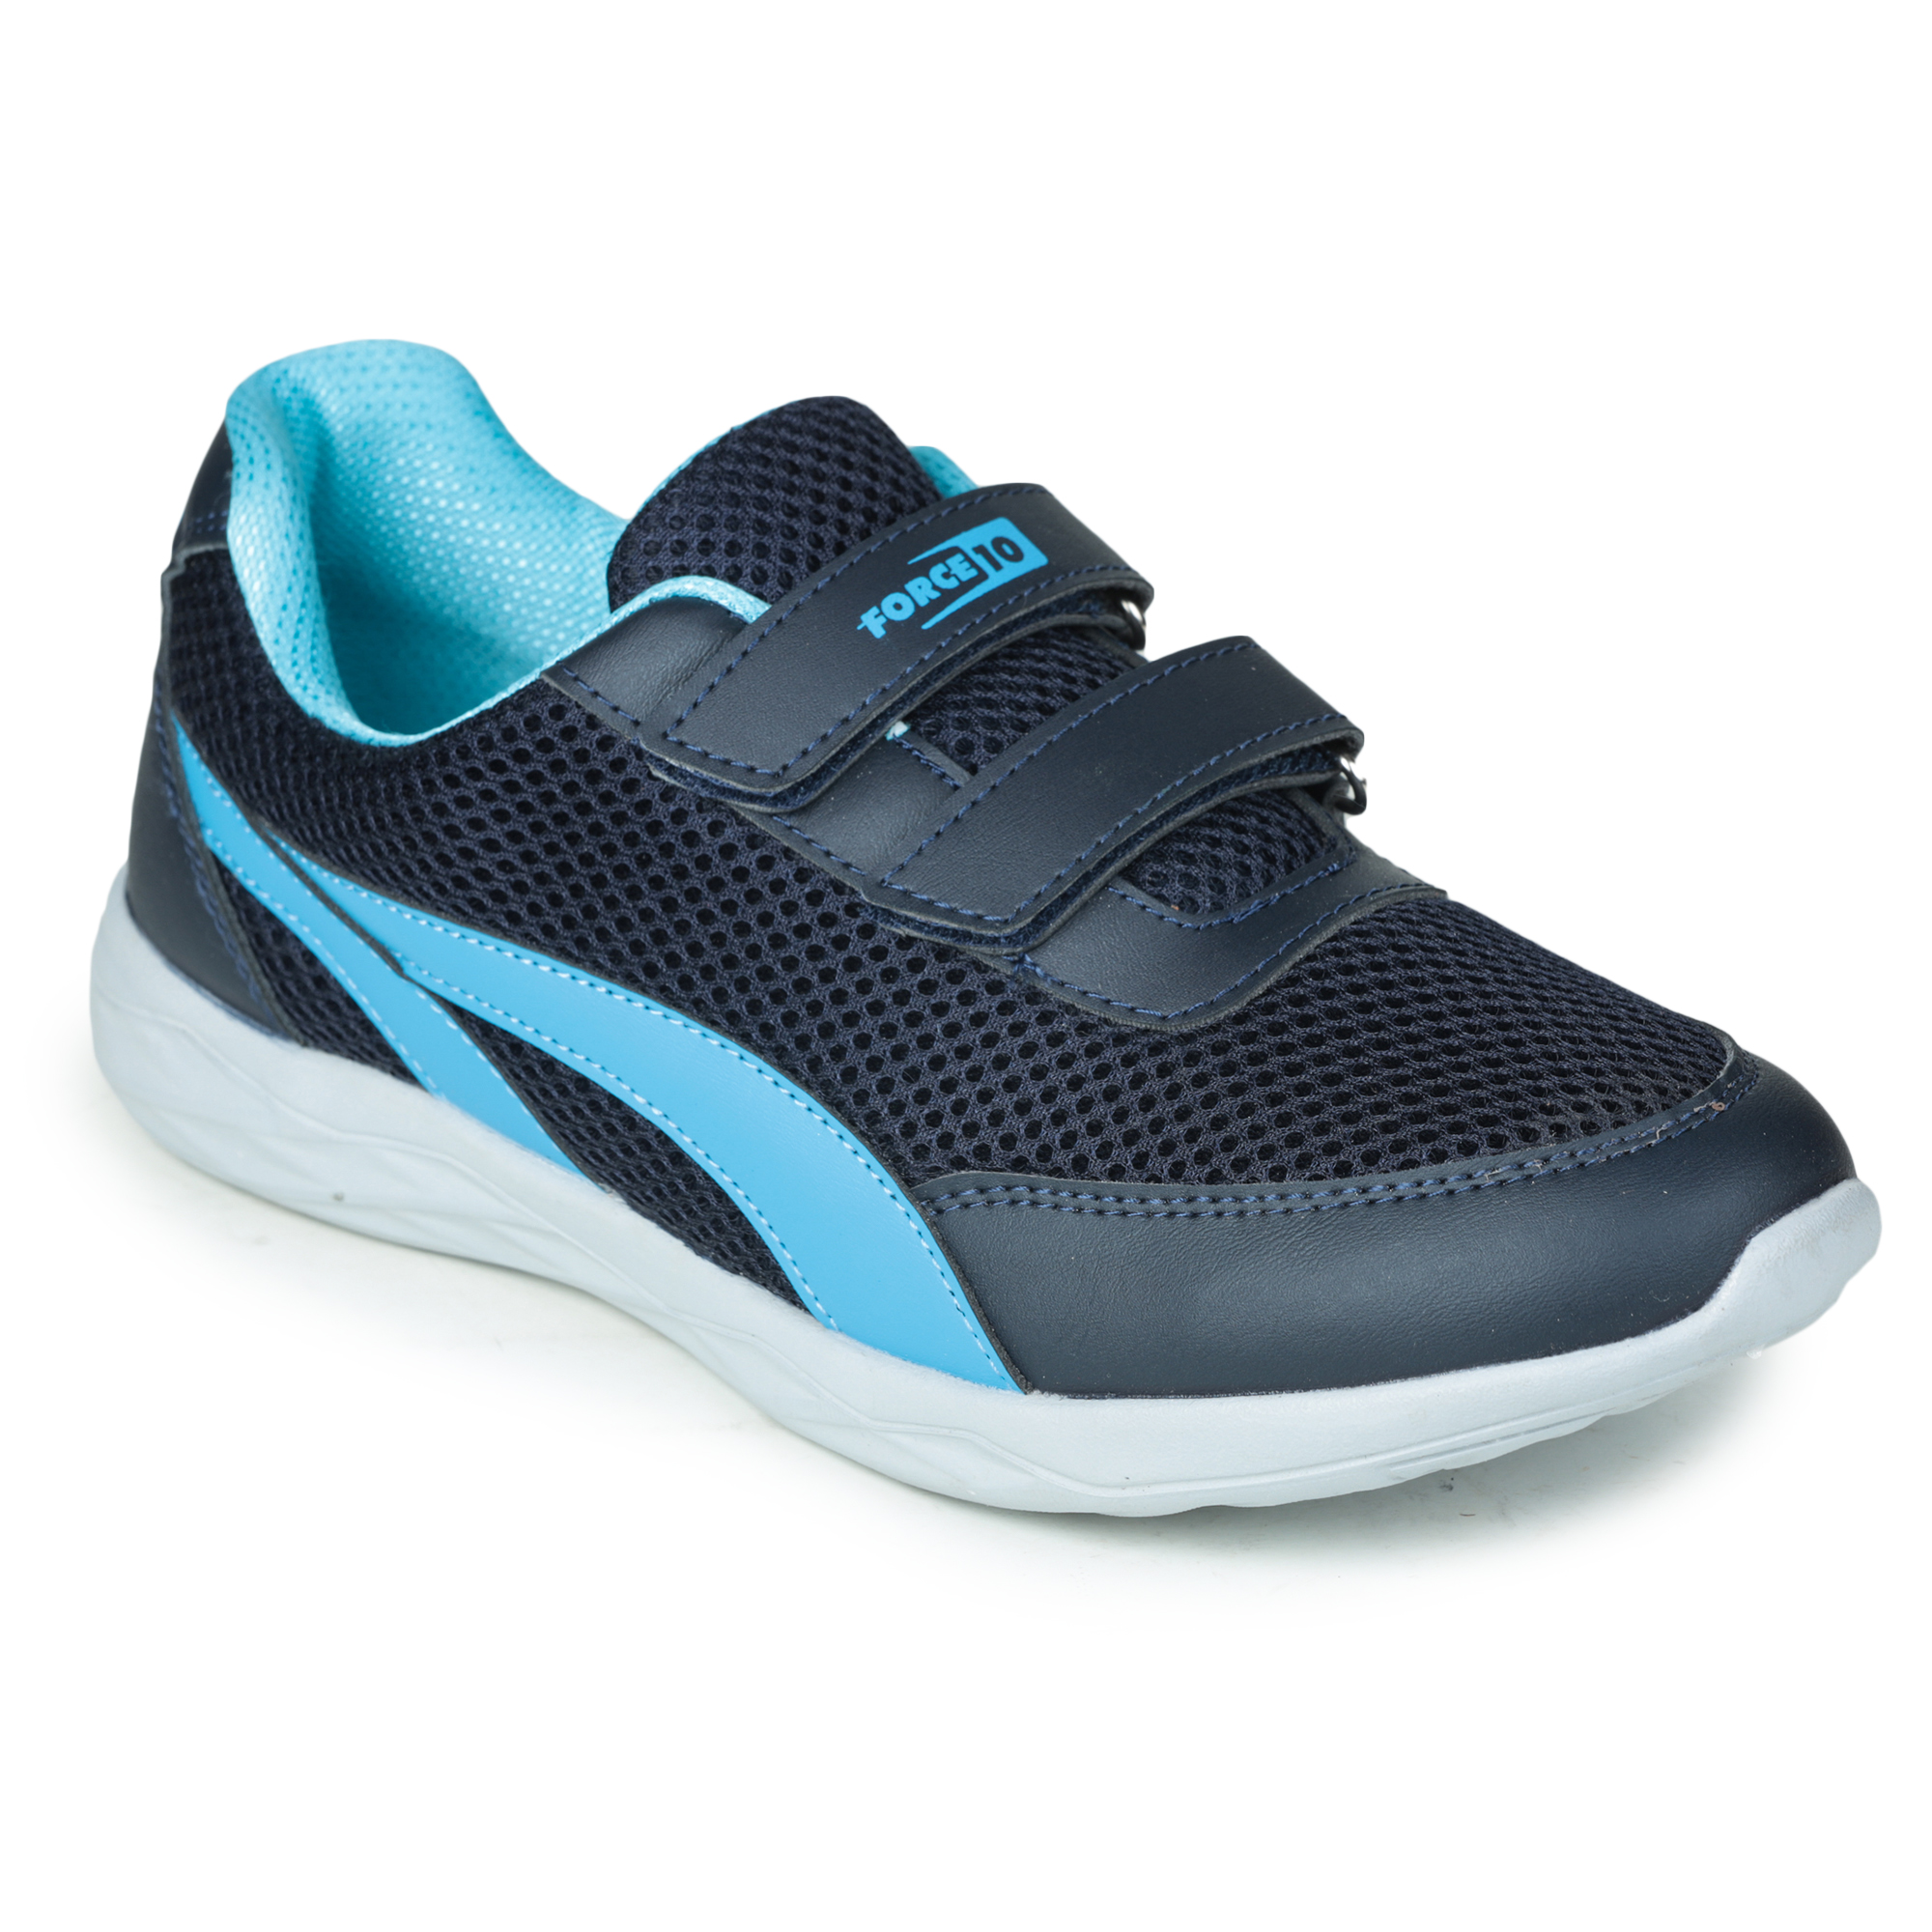 Liberty | Liberty FORCE 10 Indoor Sports Shoes ZYLO_N.BLUE For - Women